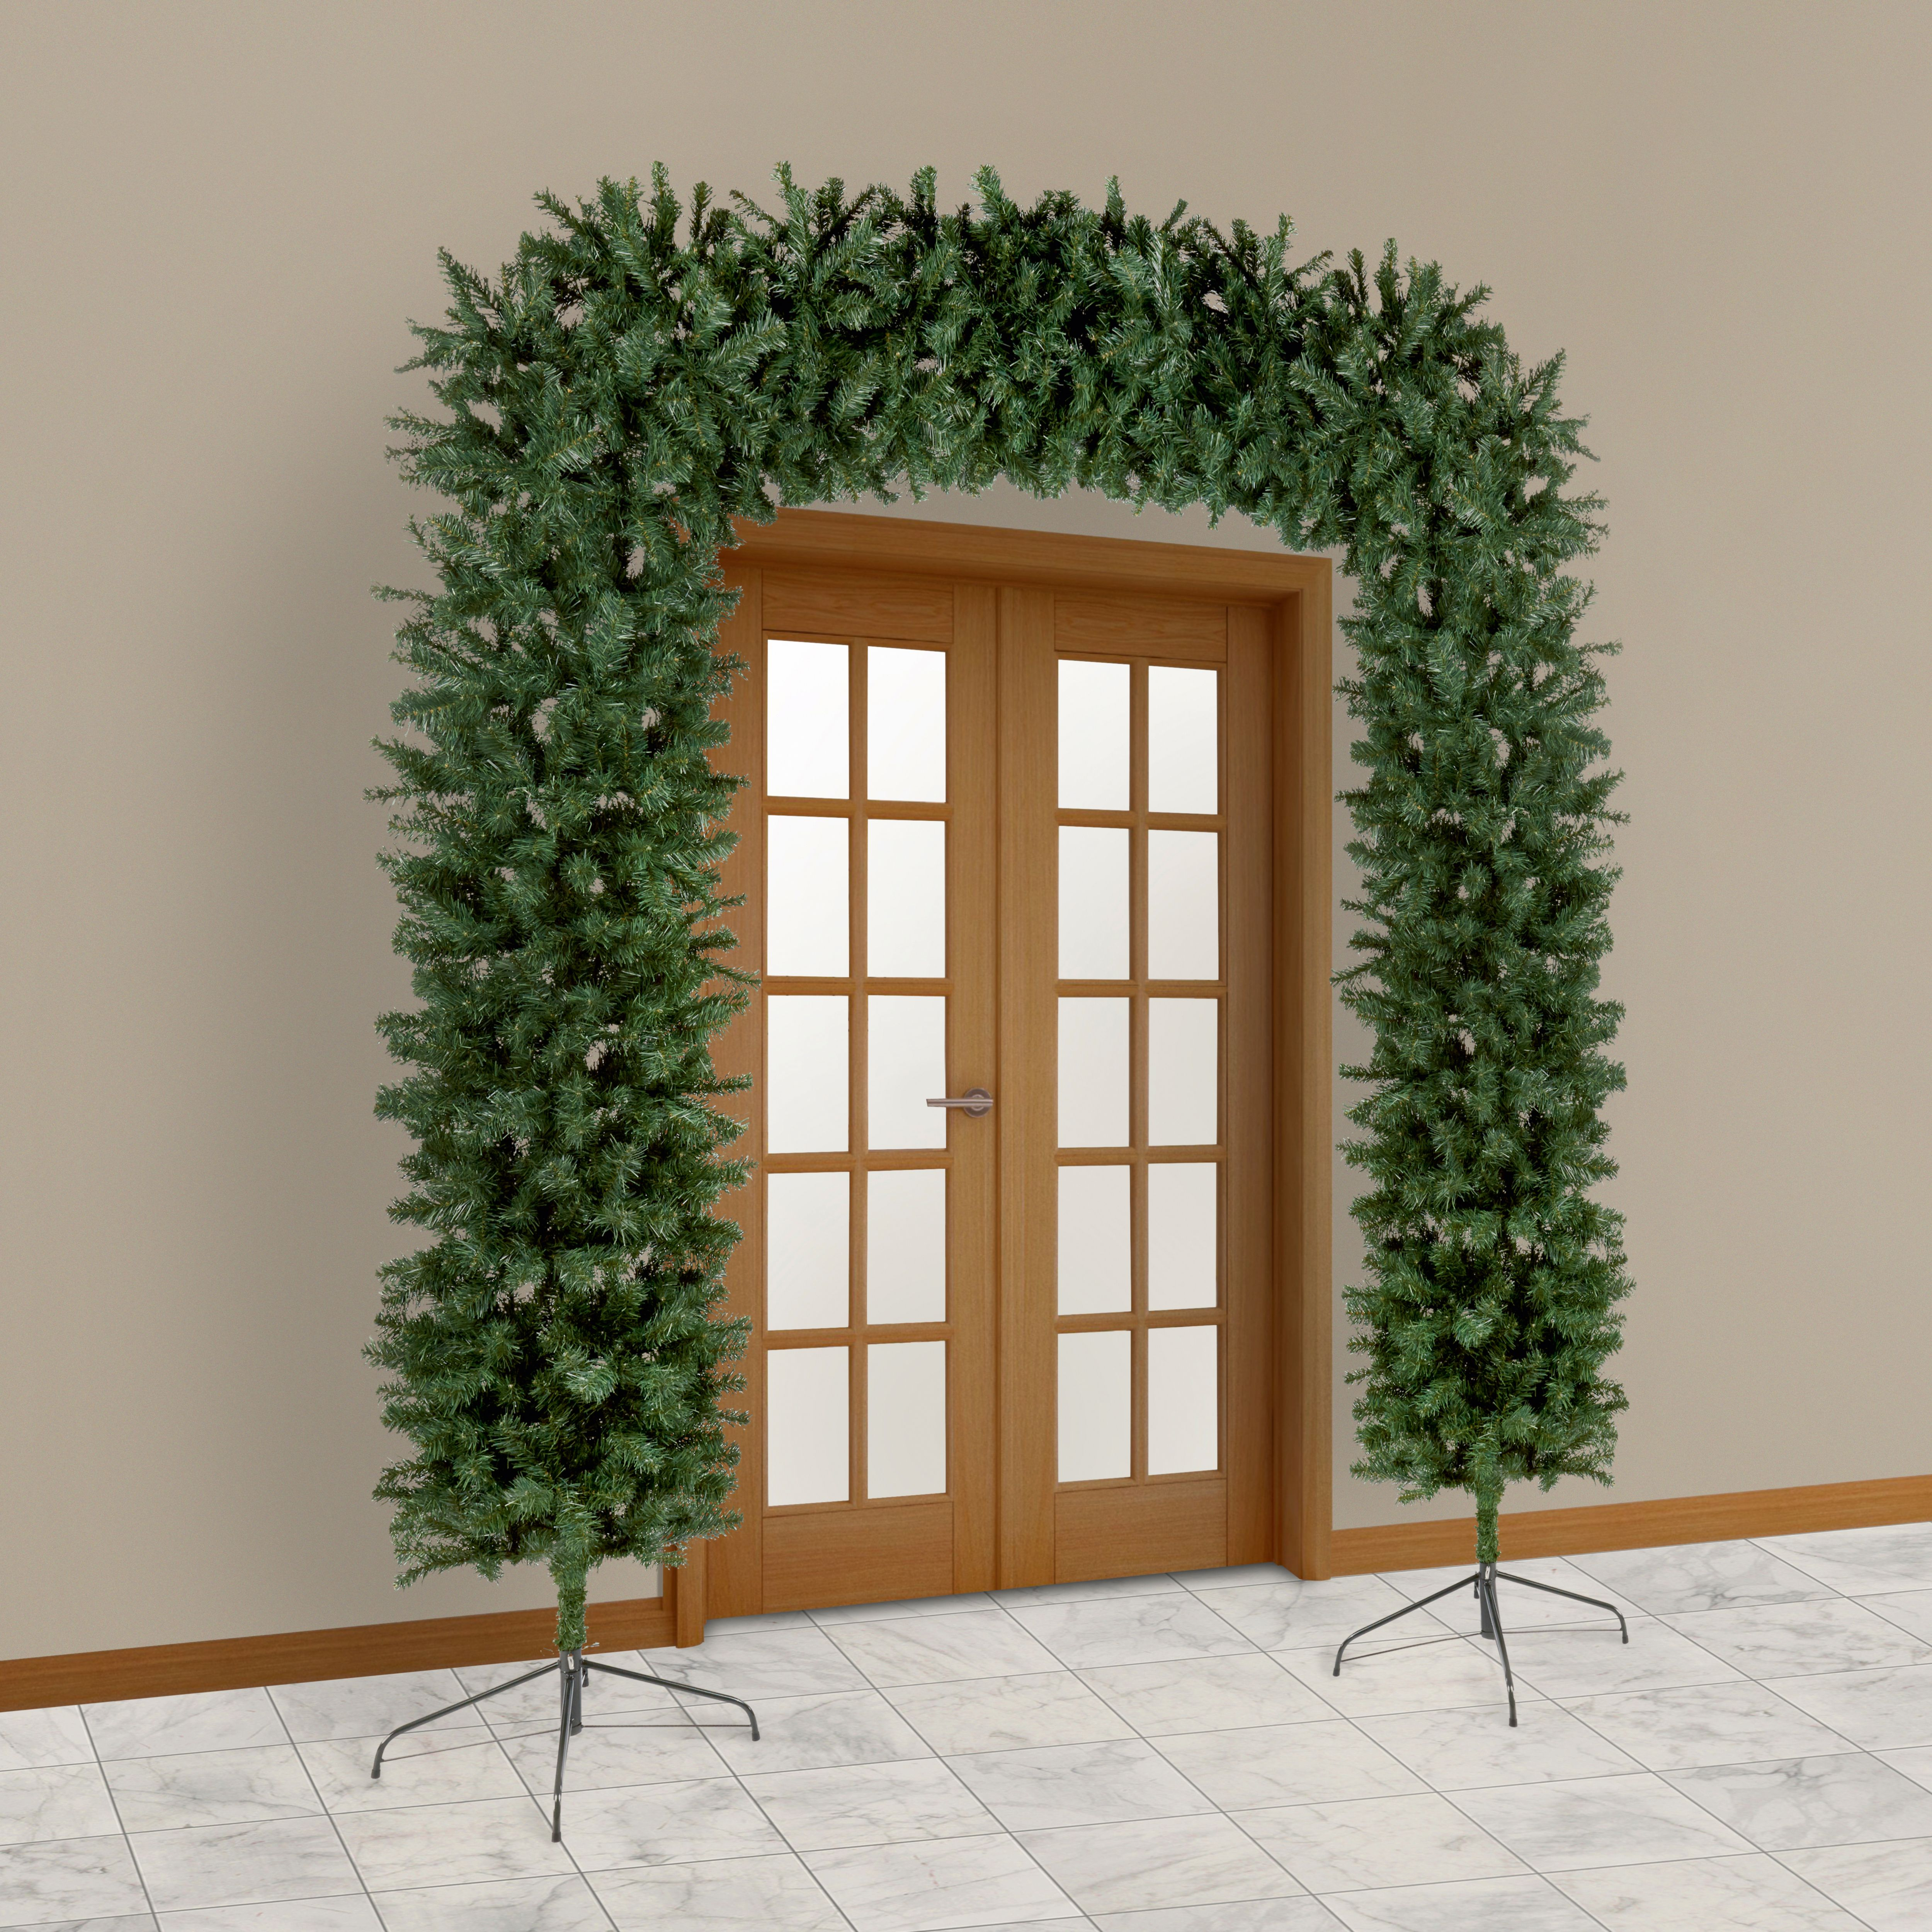 Homebase Artificial Christmas Trees: 8ft Classic Artificial Christmas Tree Arch